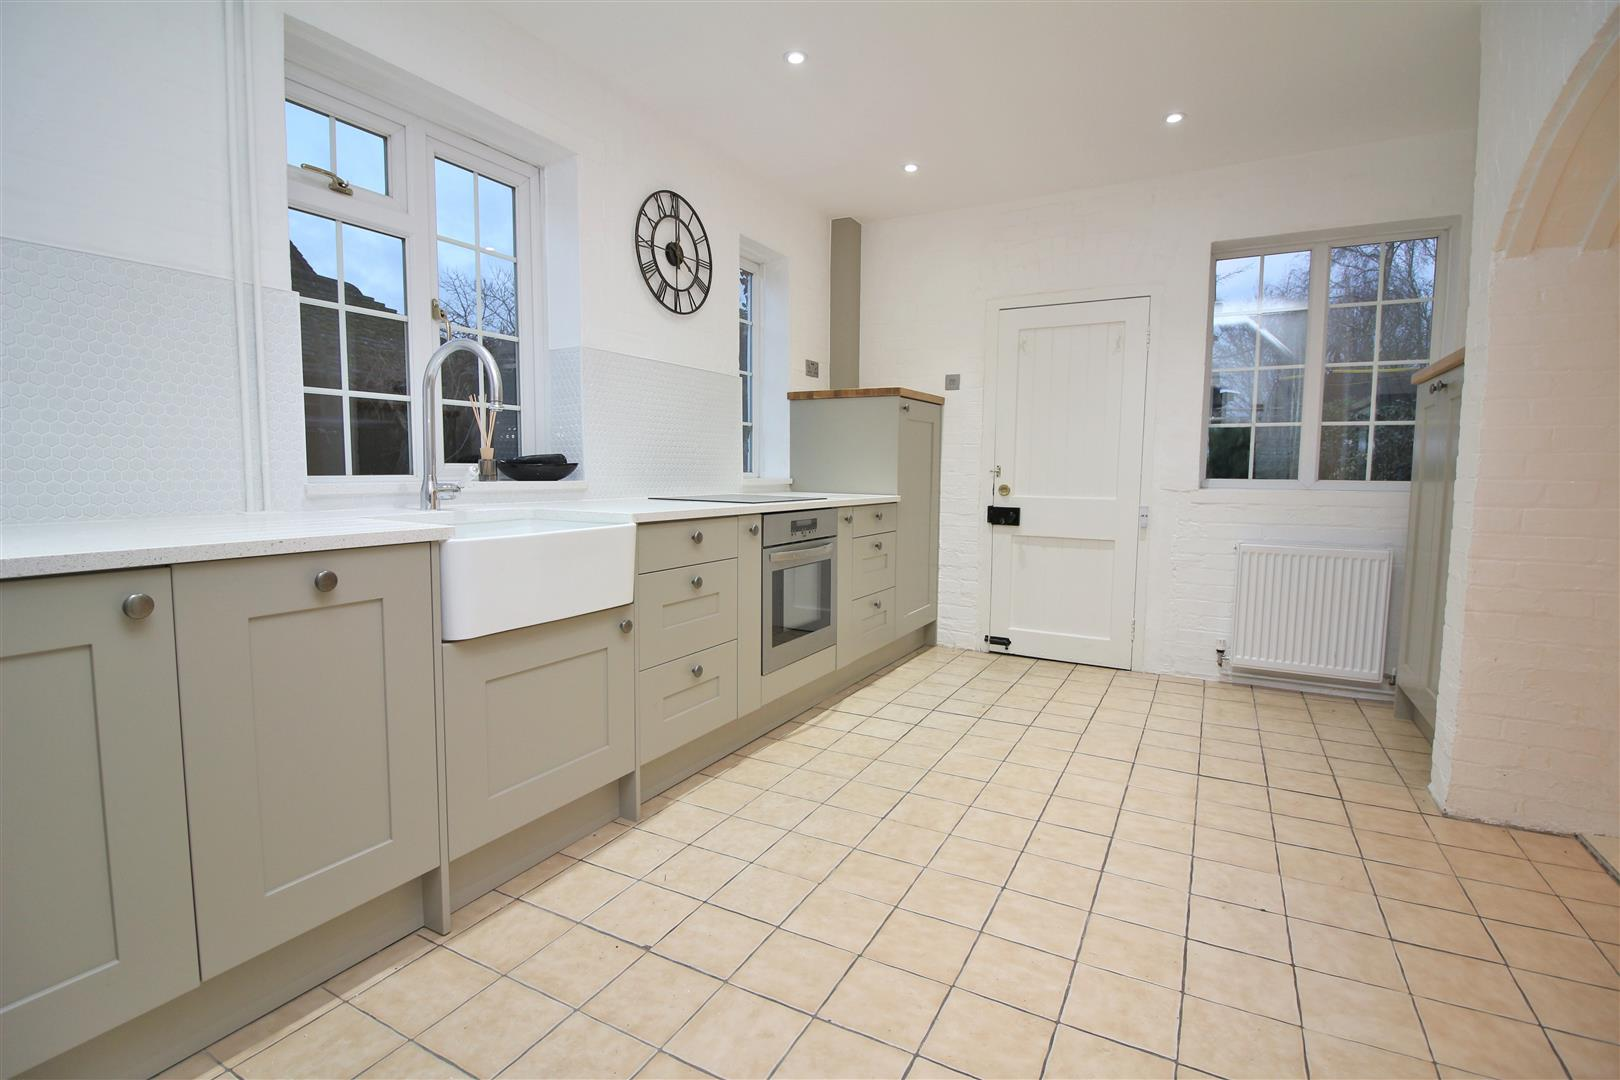 3 bed to rent in Church Lane - (Property Image 2)